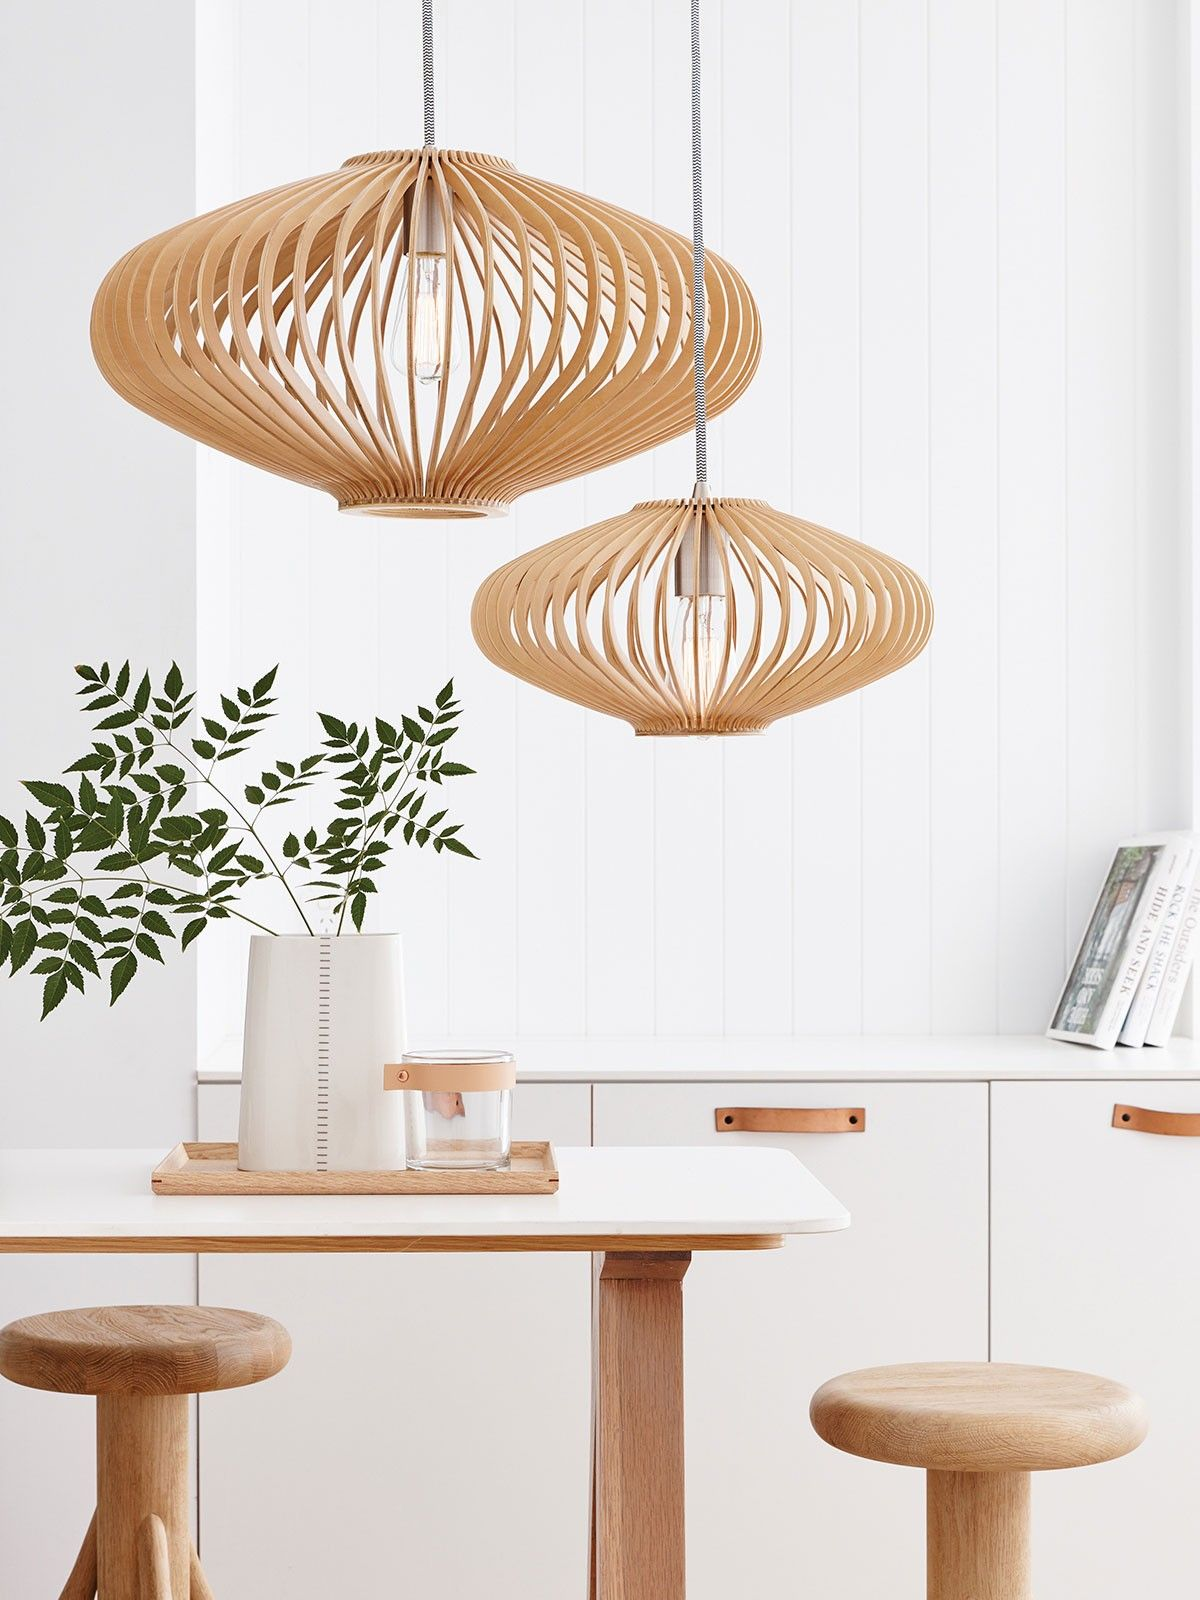 15 scandi rooms nailing the natural wood trend pendant lighting 15 scandi rooms nailing the natural wood trend minimal pendant light 768x1024 beacon lightinghouse aloadofball